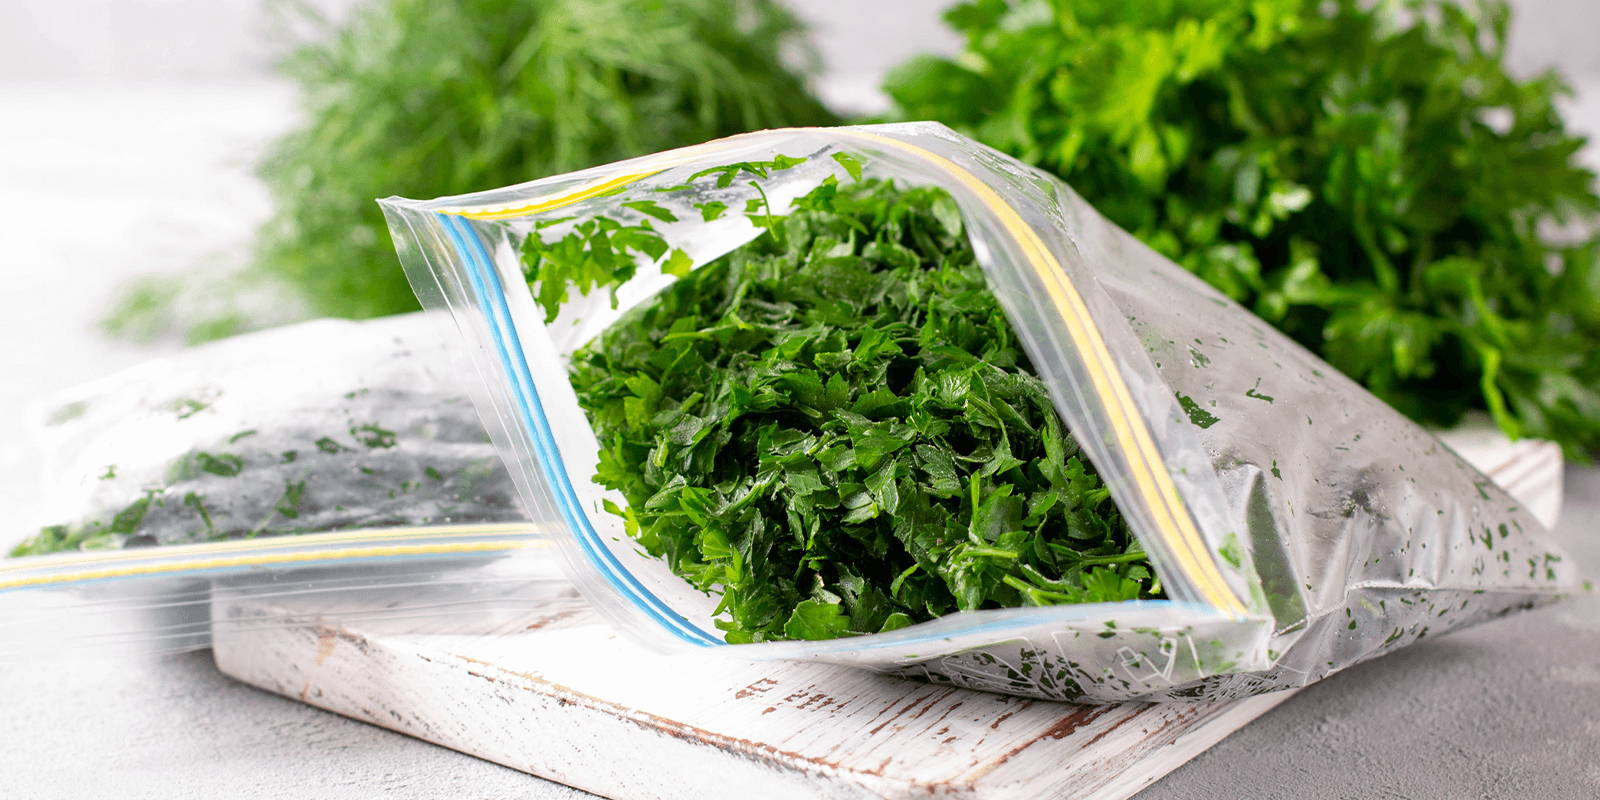 Frozen, bagged herbs sit on counter.